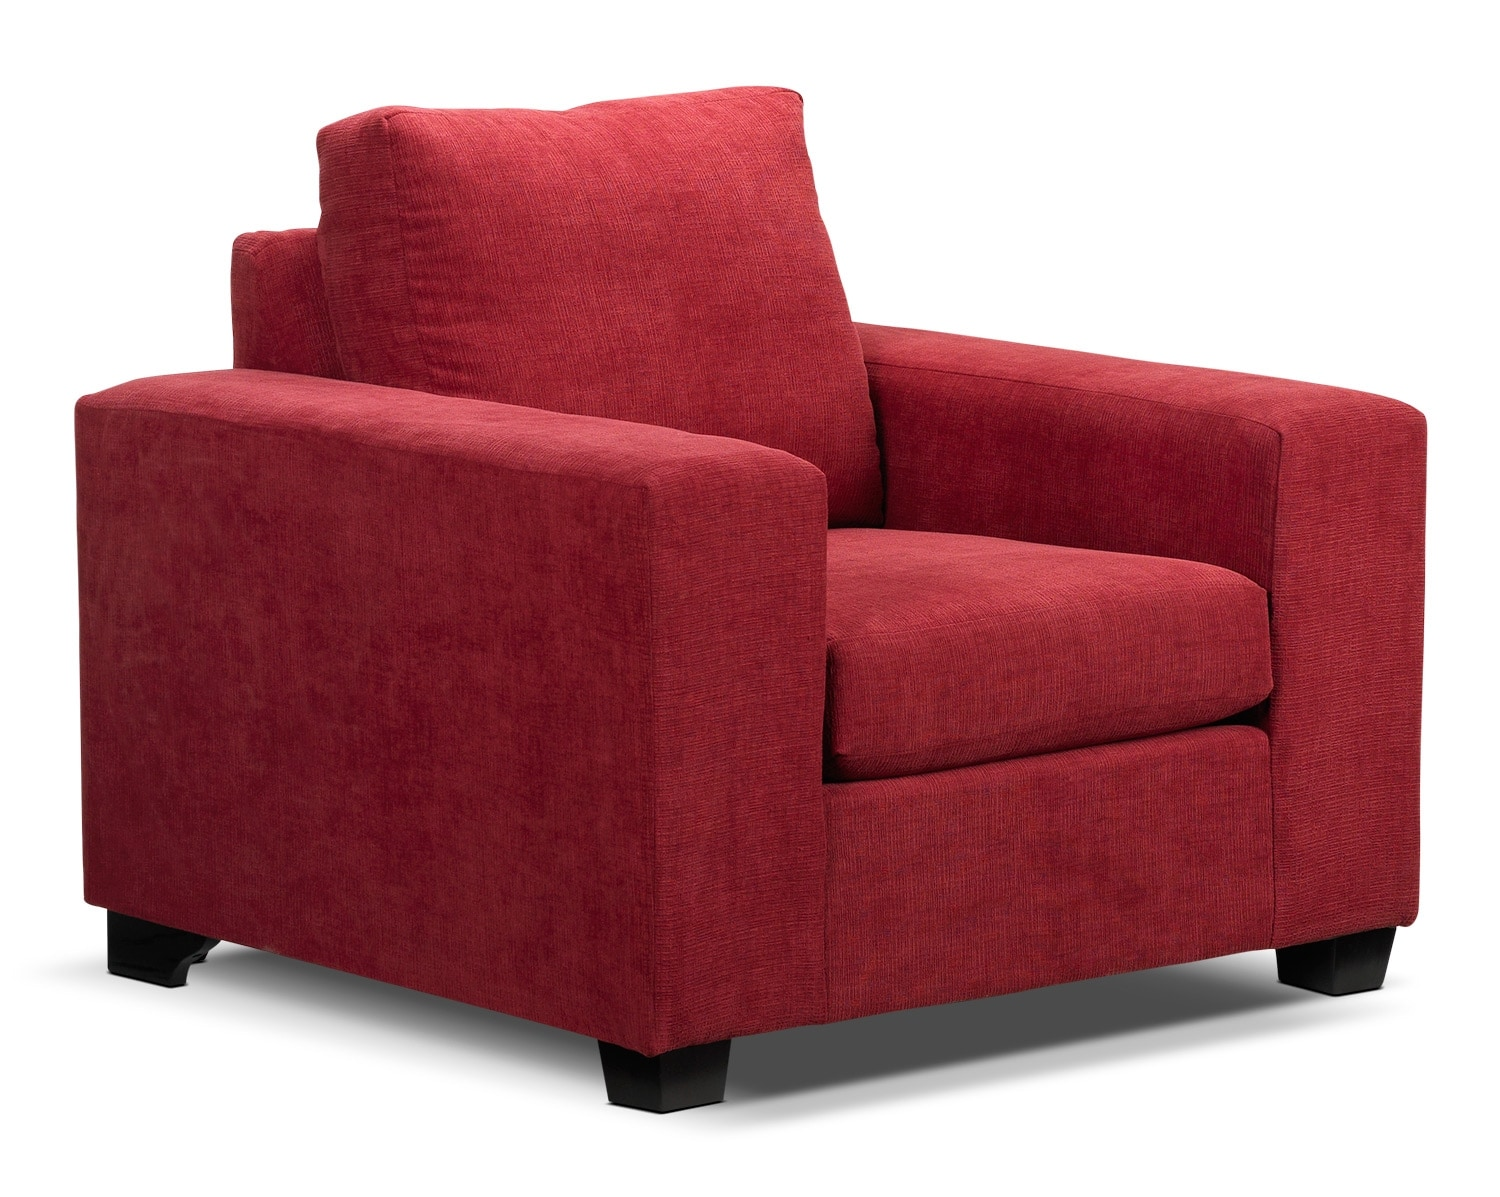 Fava Chair - Red - Furniture Chairs Living Room Winda 7 Furniture